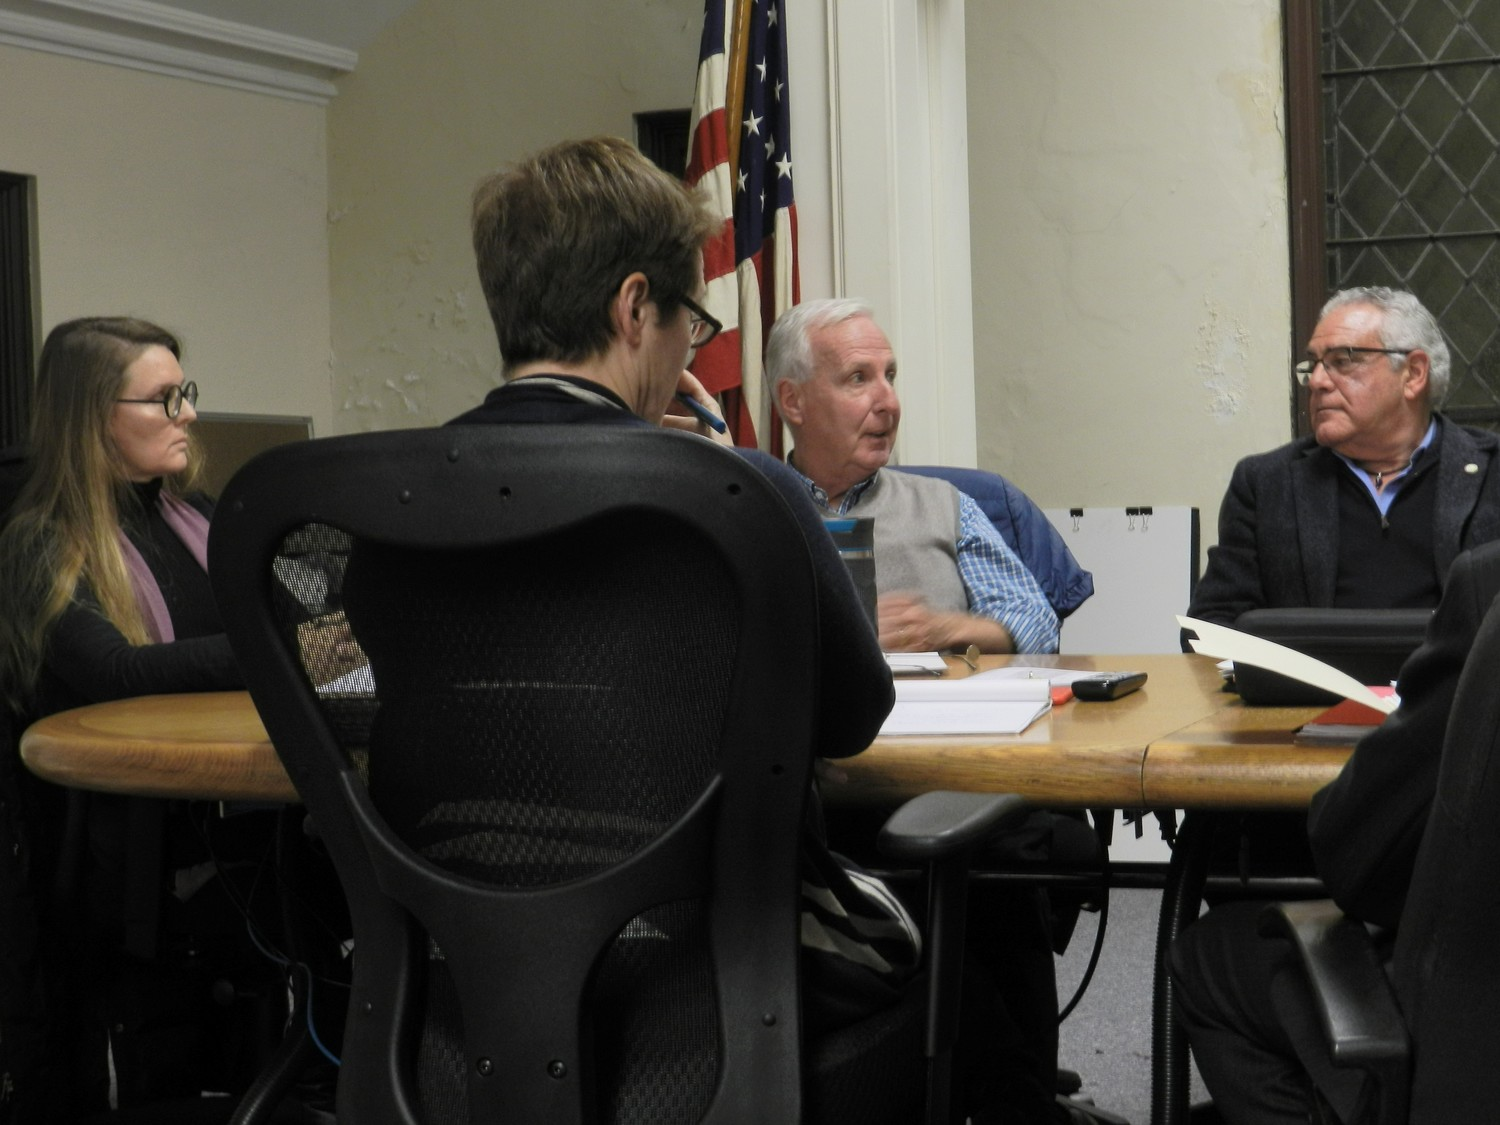 The Village Board held its monthly conference meeting on Monday, at which public comment was allowed.